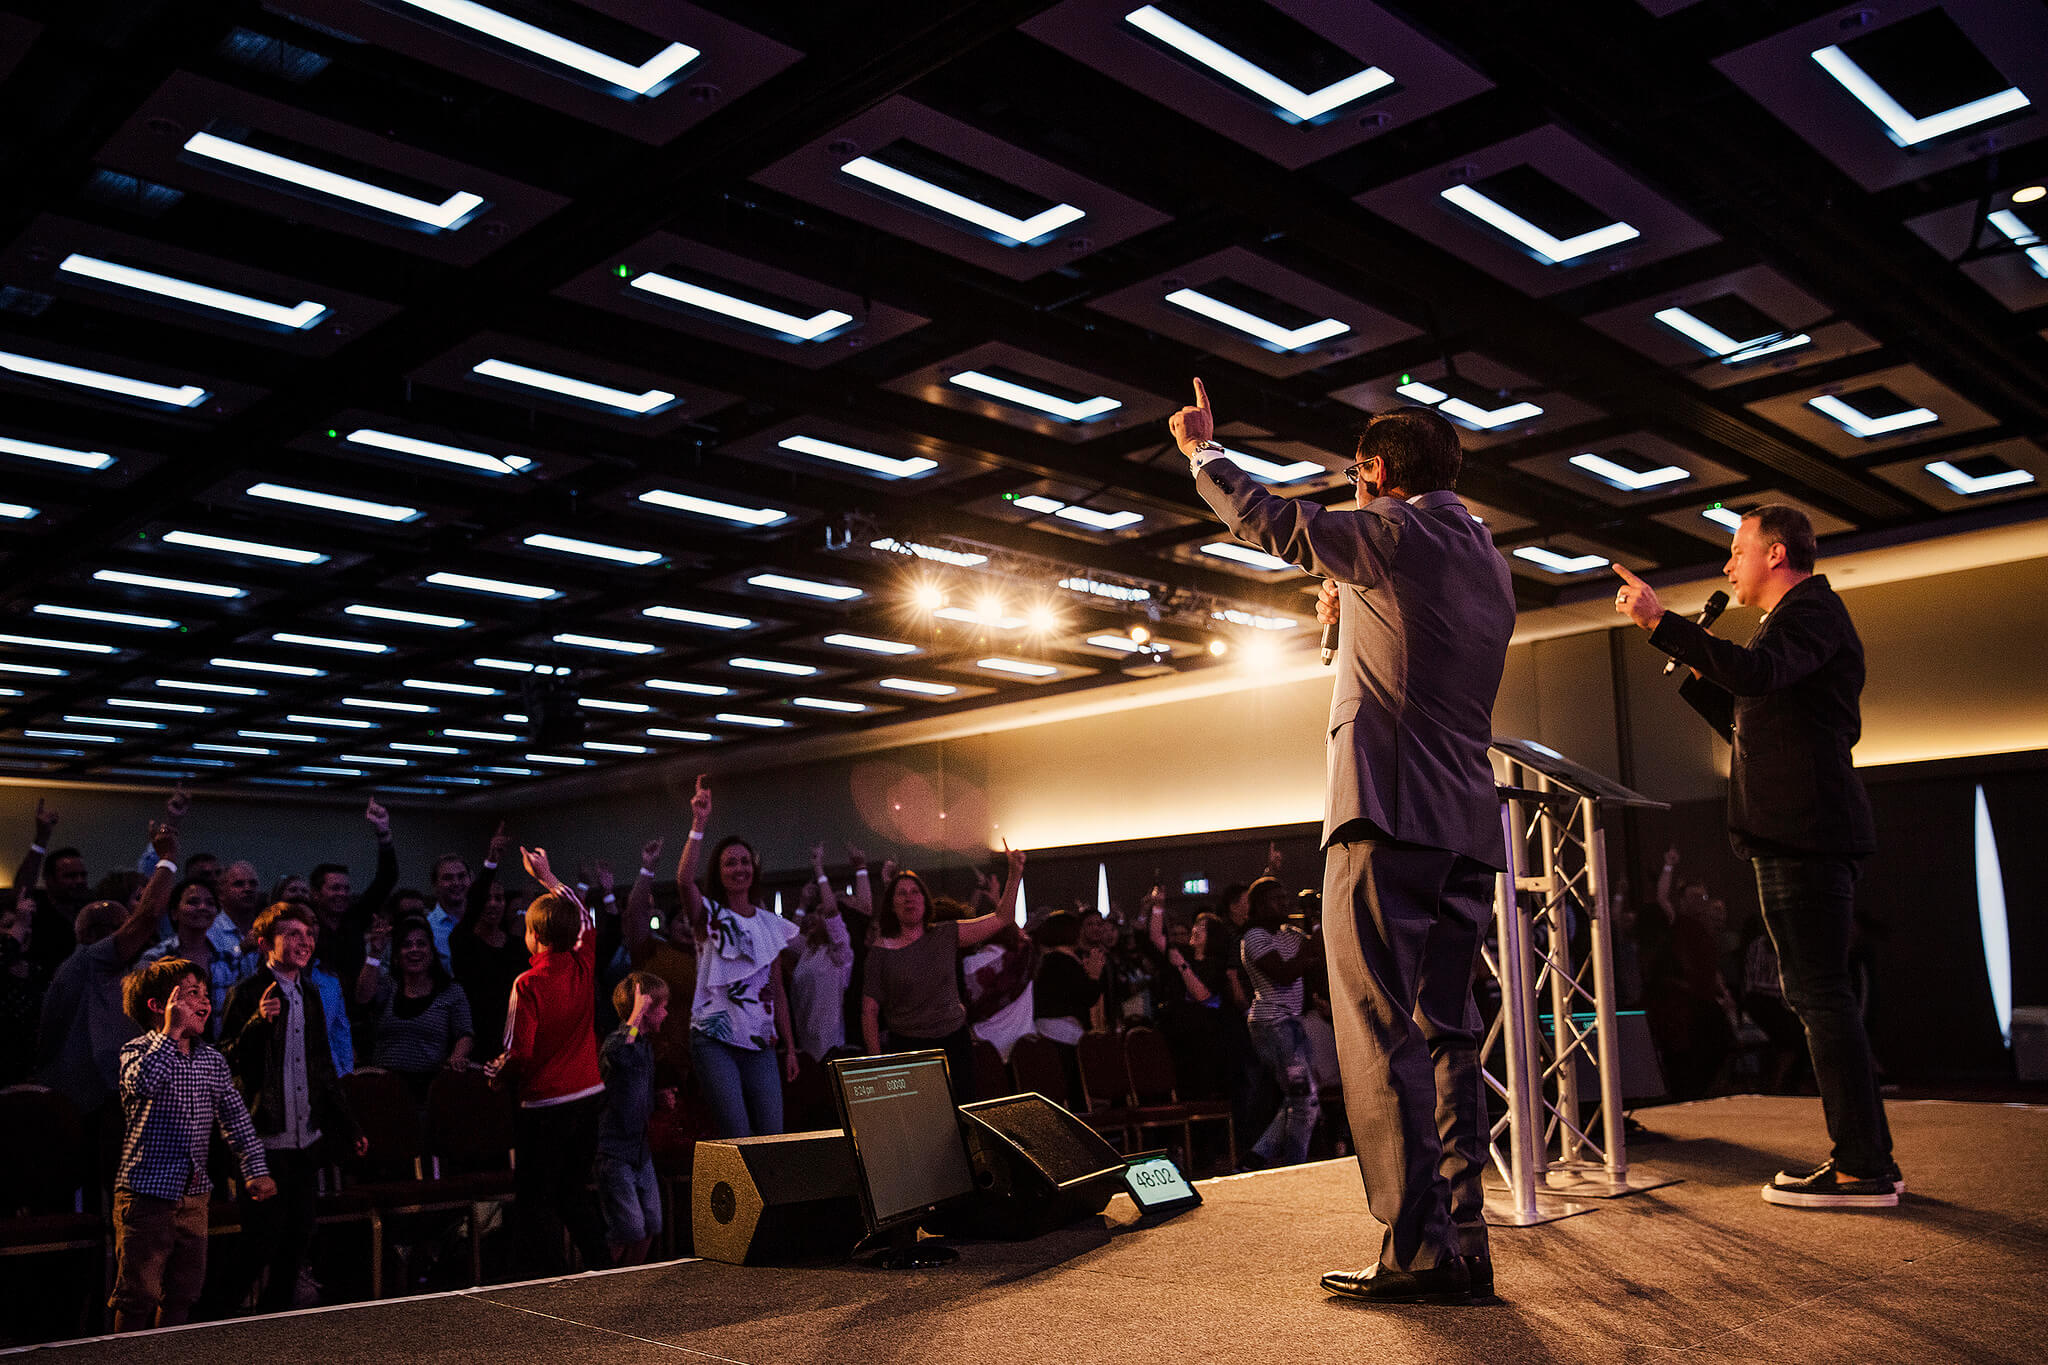 Podcasts - Watch and listen to the podcasts from the G12 UK Conference in London via YouTube today.